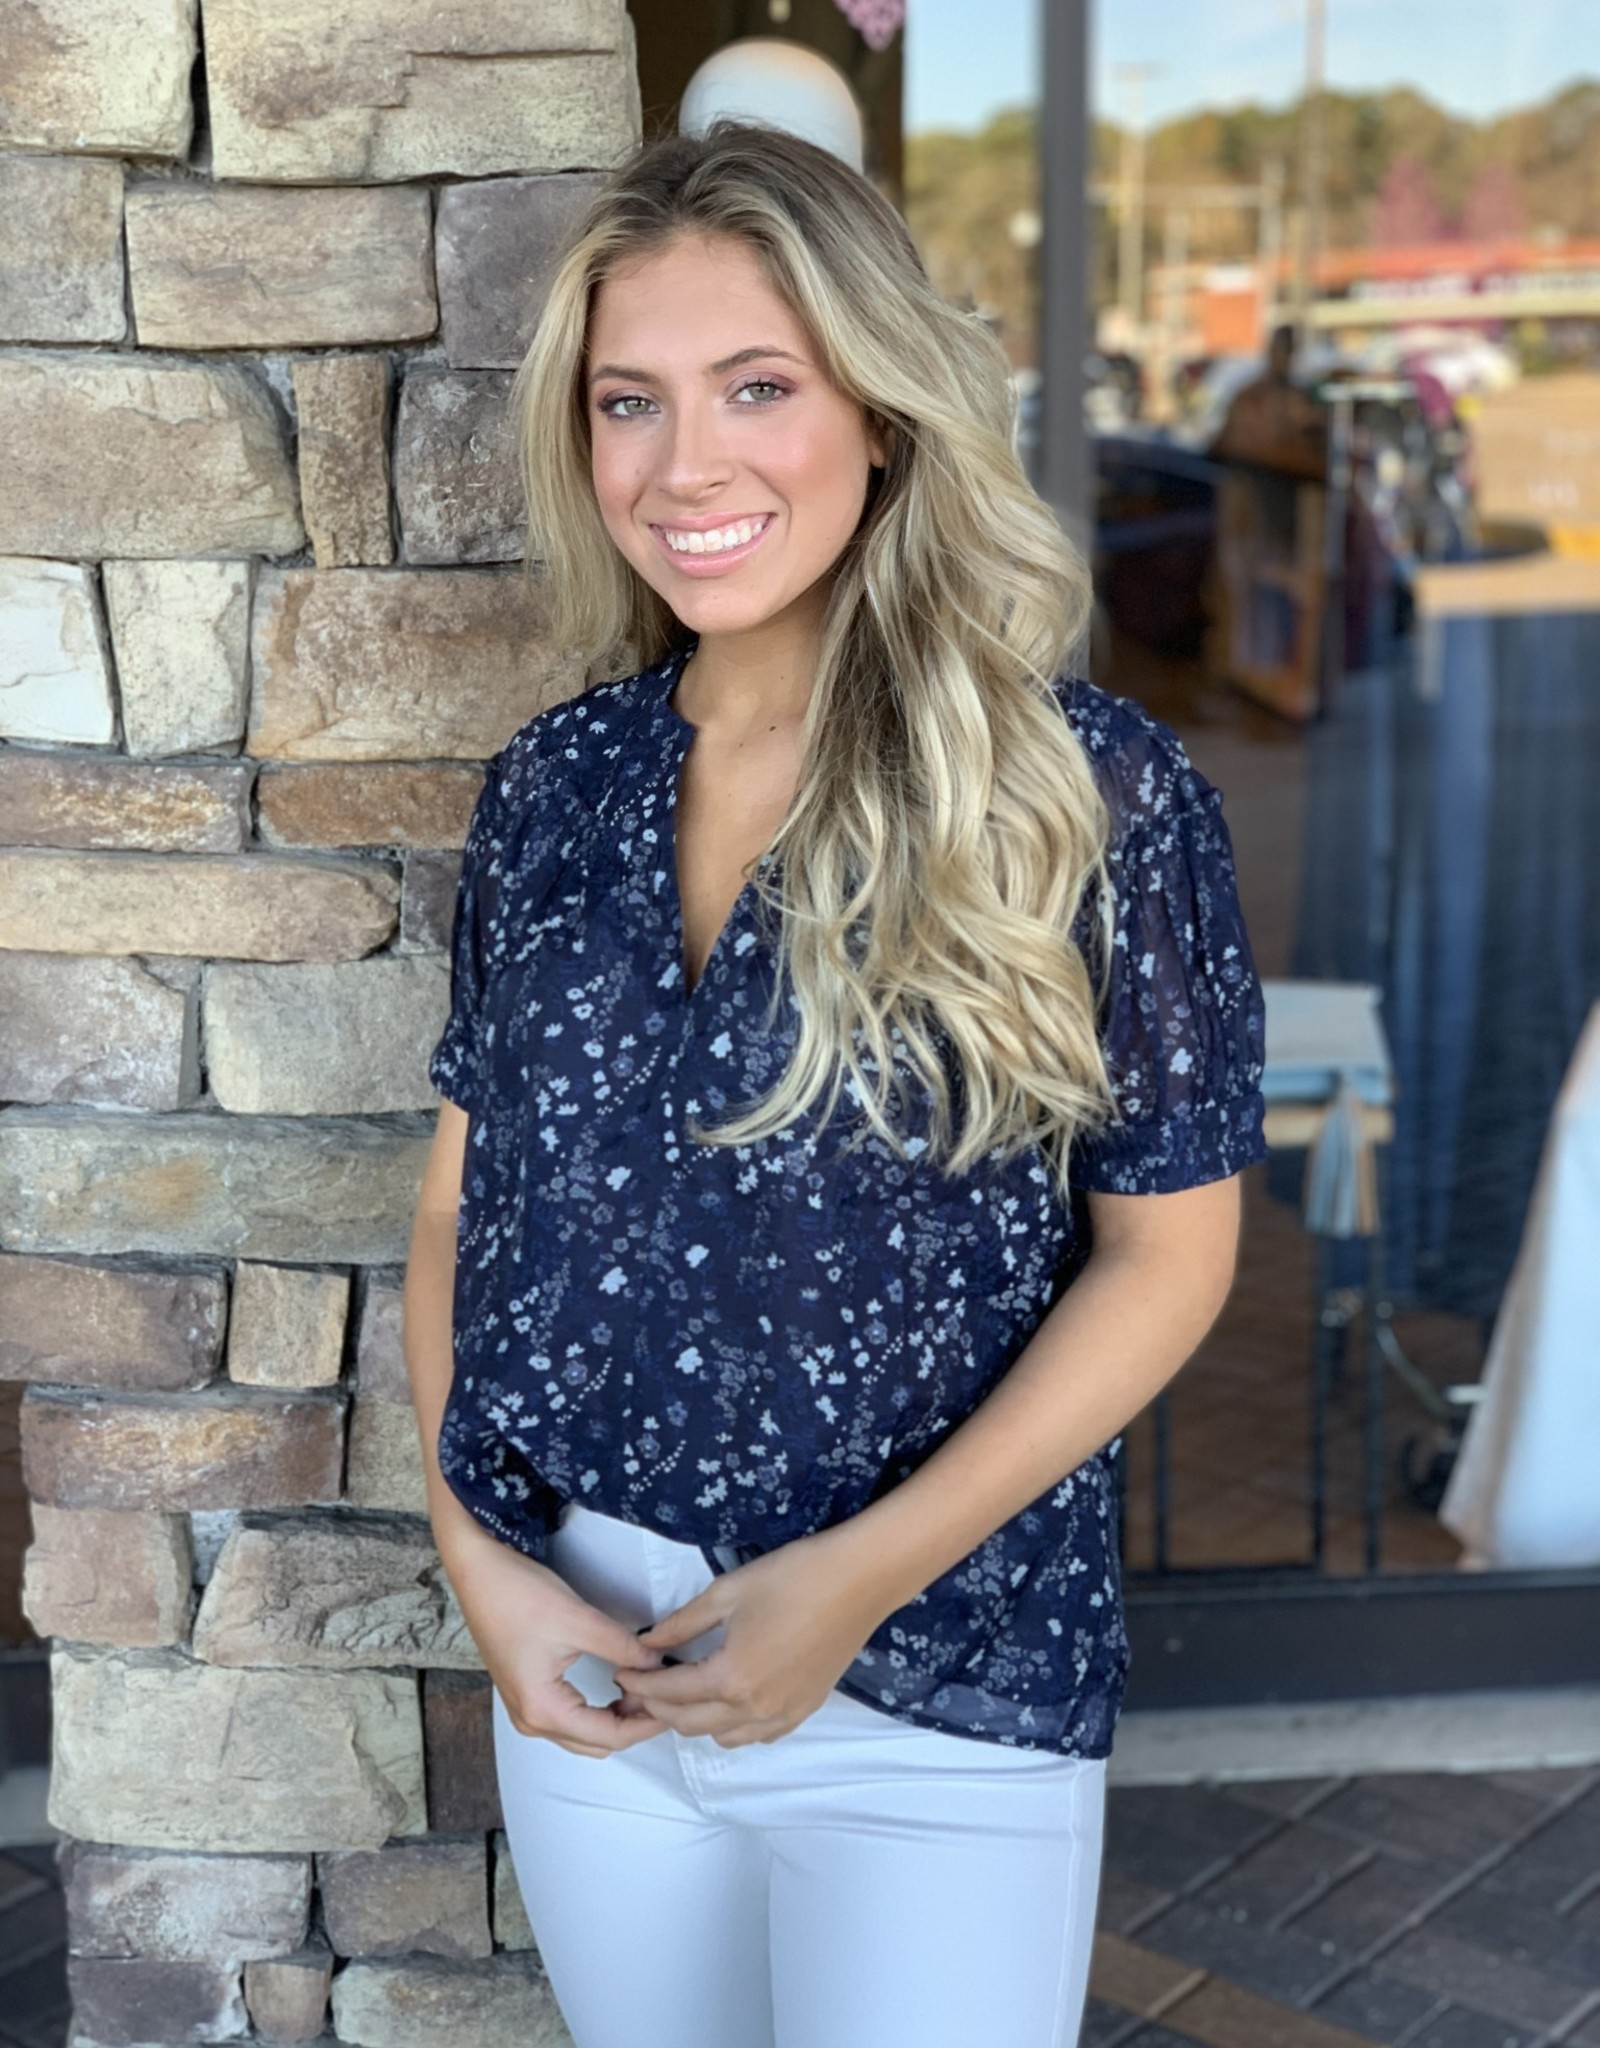 NAVY FLORAL PRINT TOP W/ RUFFLE